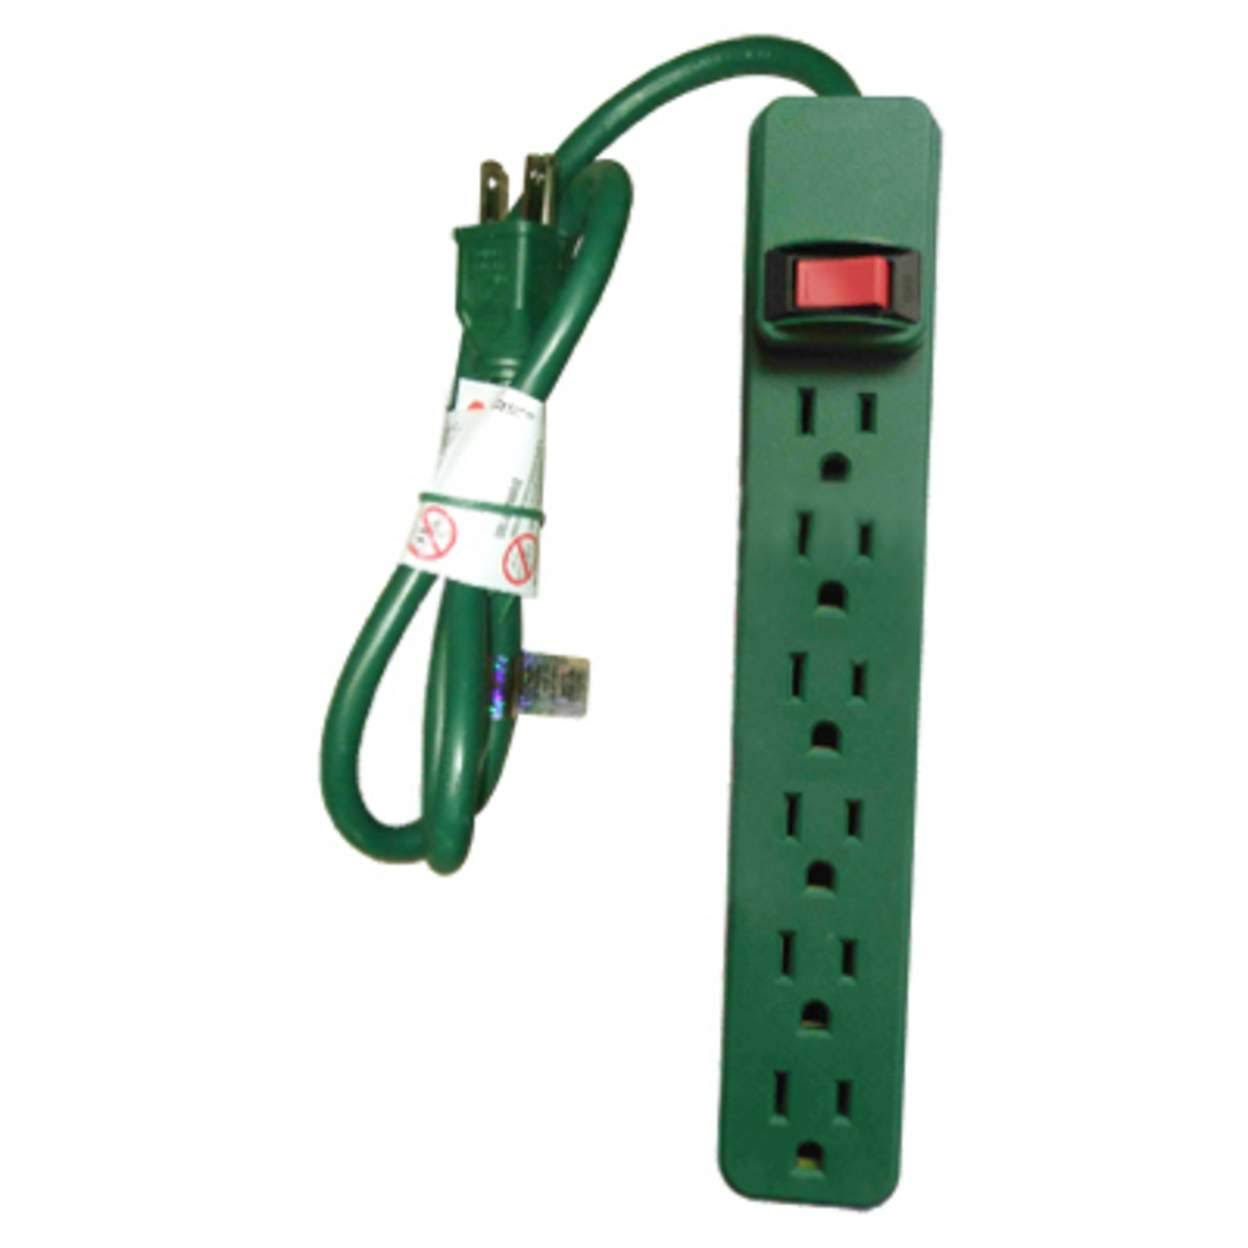 Kab Enterprise PS-669G 6-Outlet Power Strip, Green